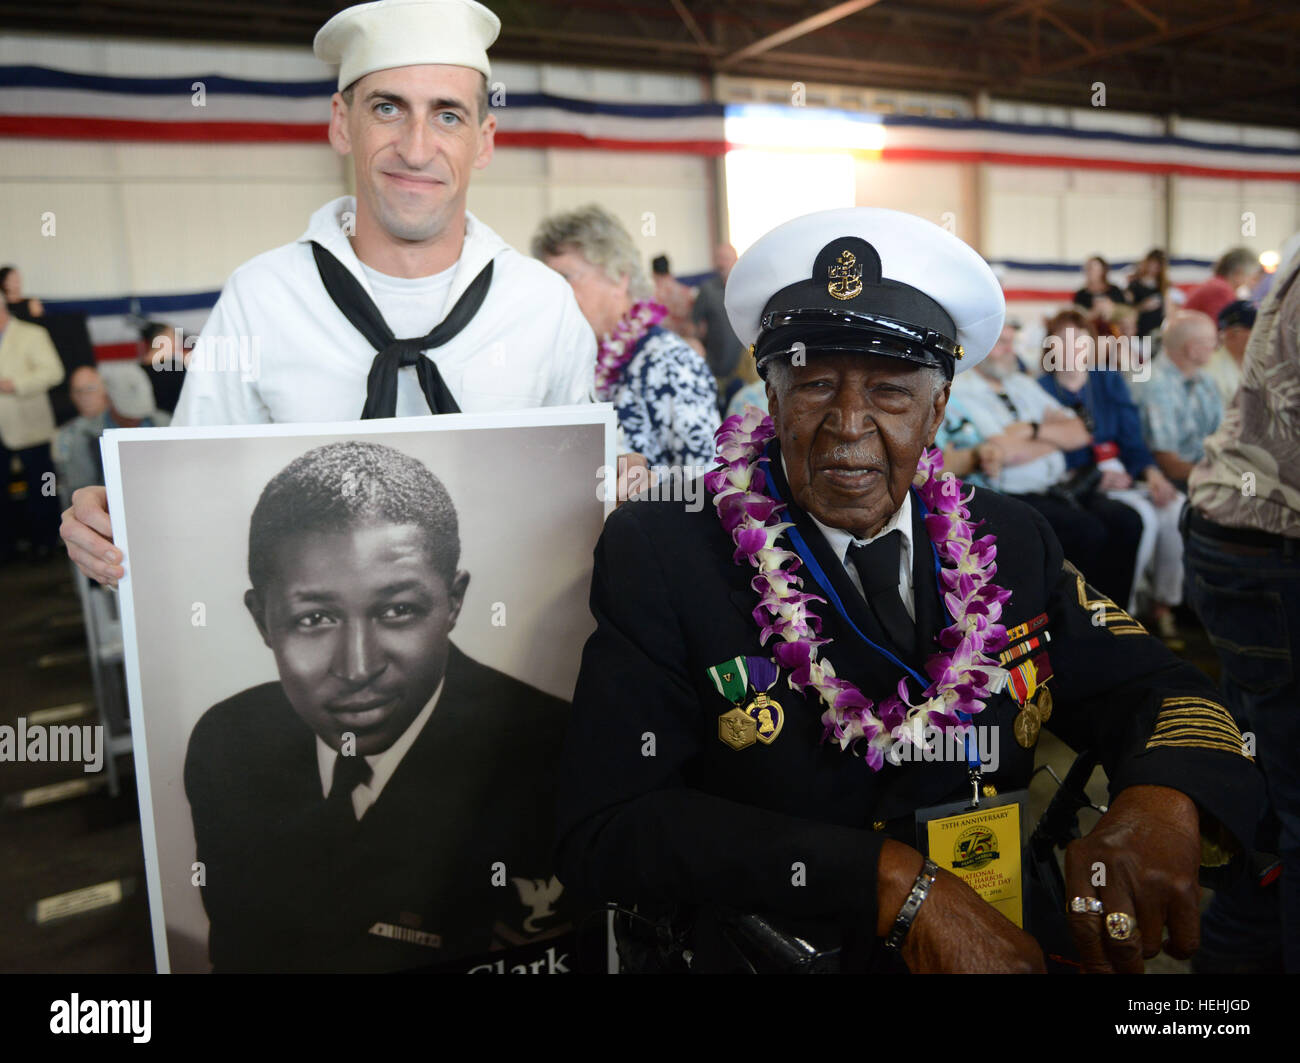 U.S. World War II veteran and Pearl Harbor survivor Carl Clark poses next to a younger portrait of himself during - Stock Image